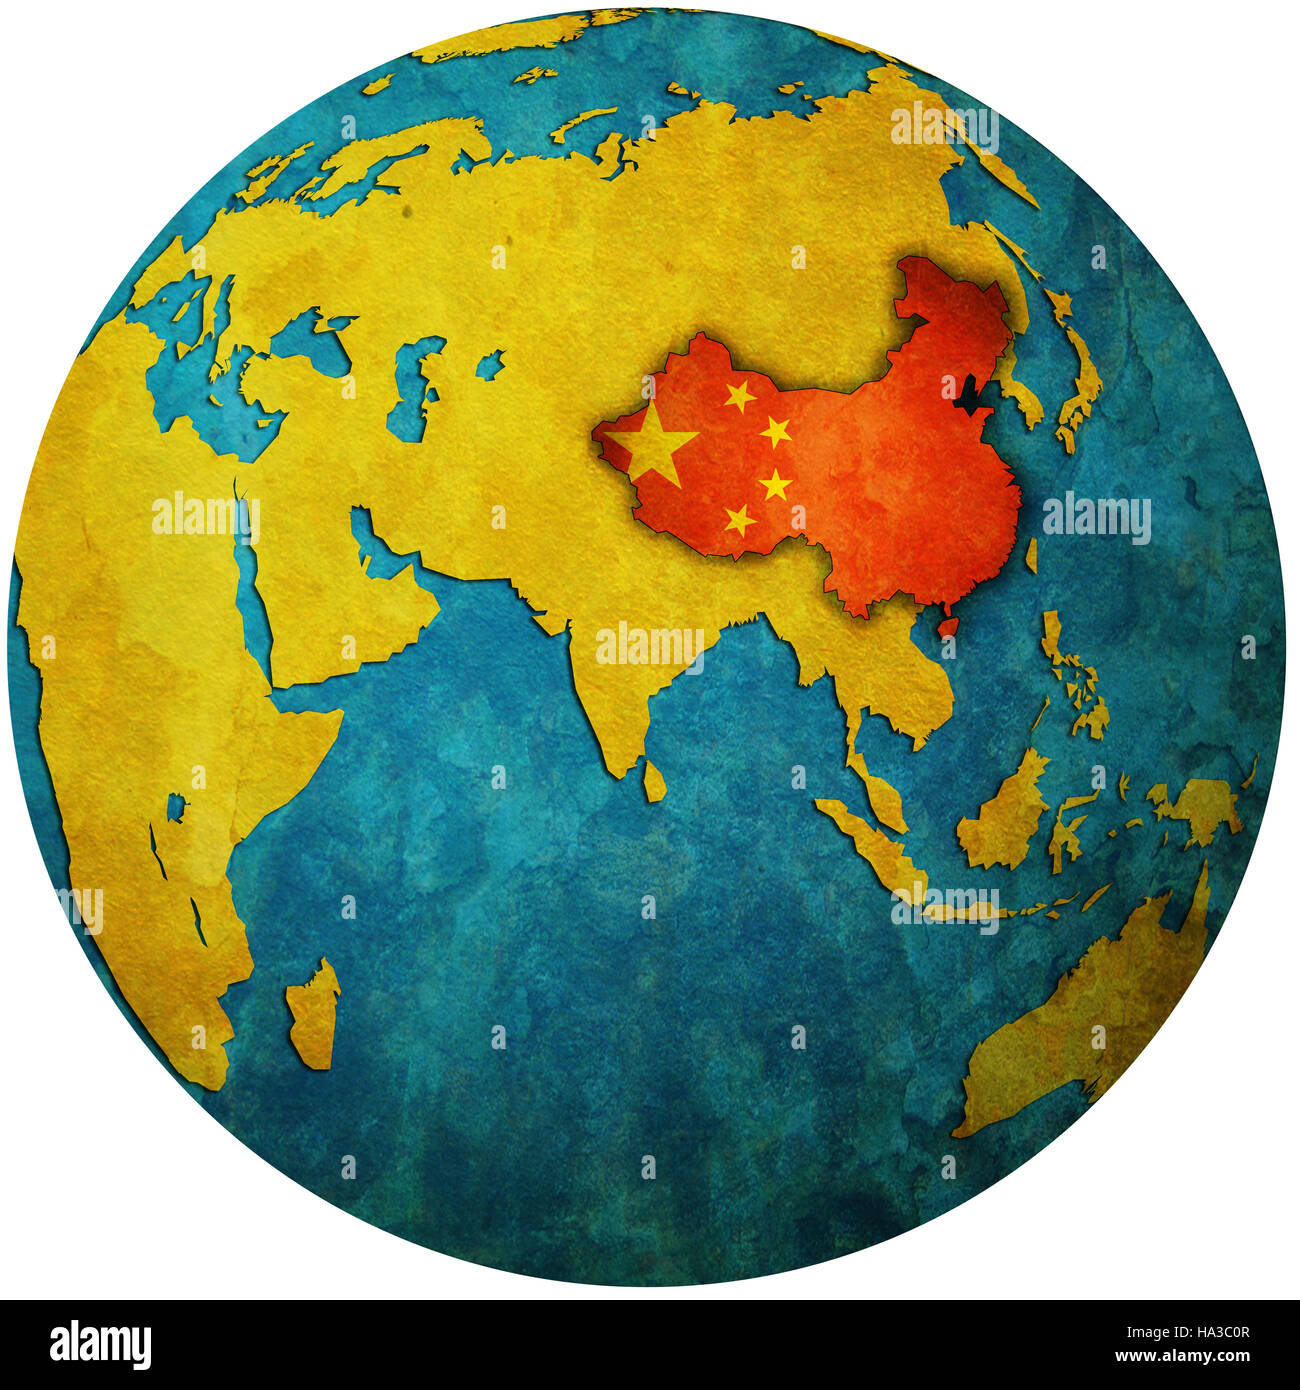 isolated over white territory of china with flag on globe map